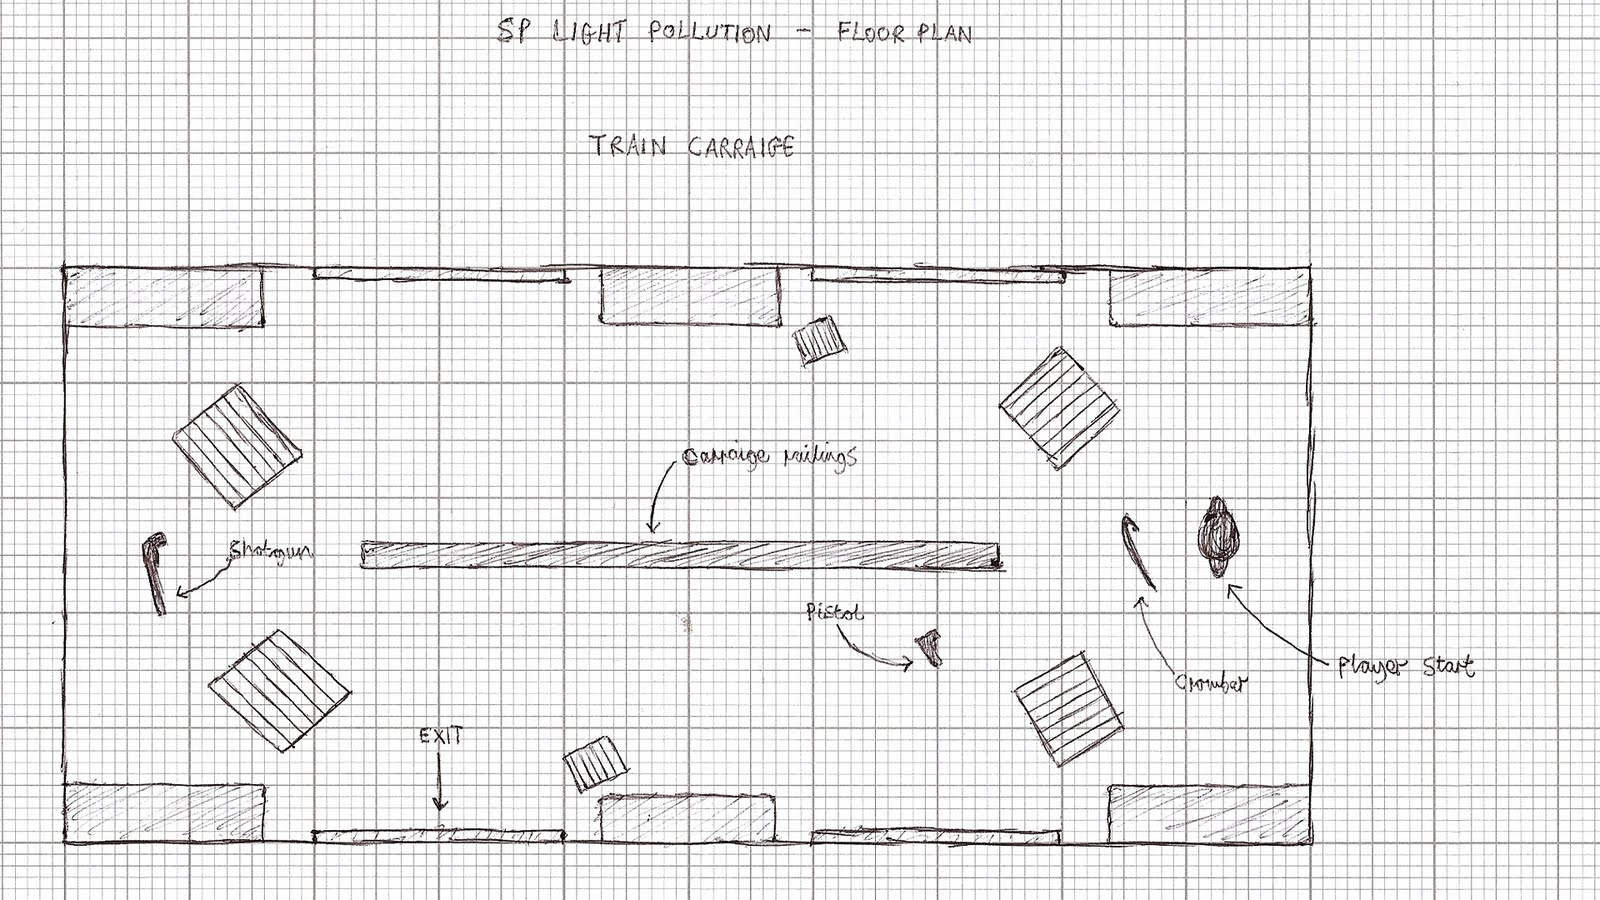 david friend level design  floor plans